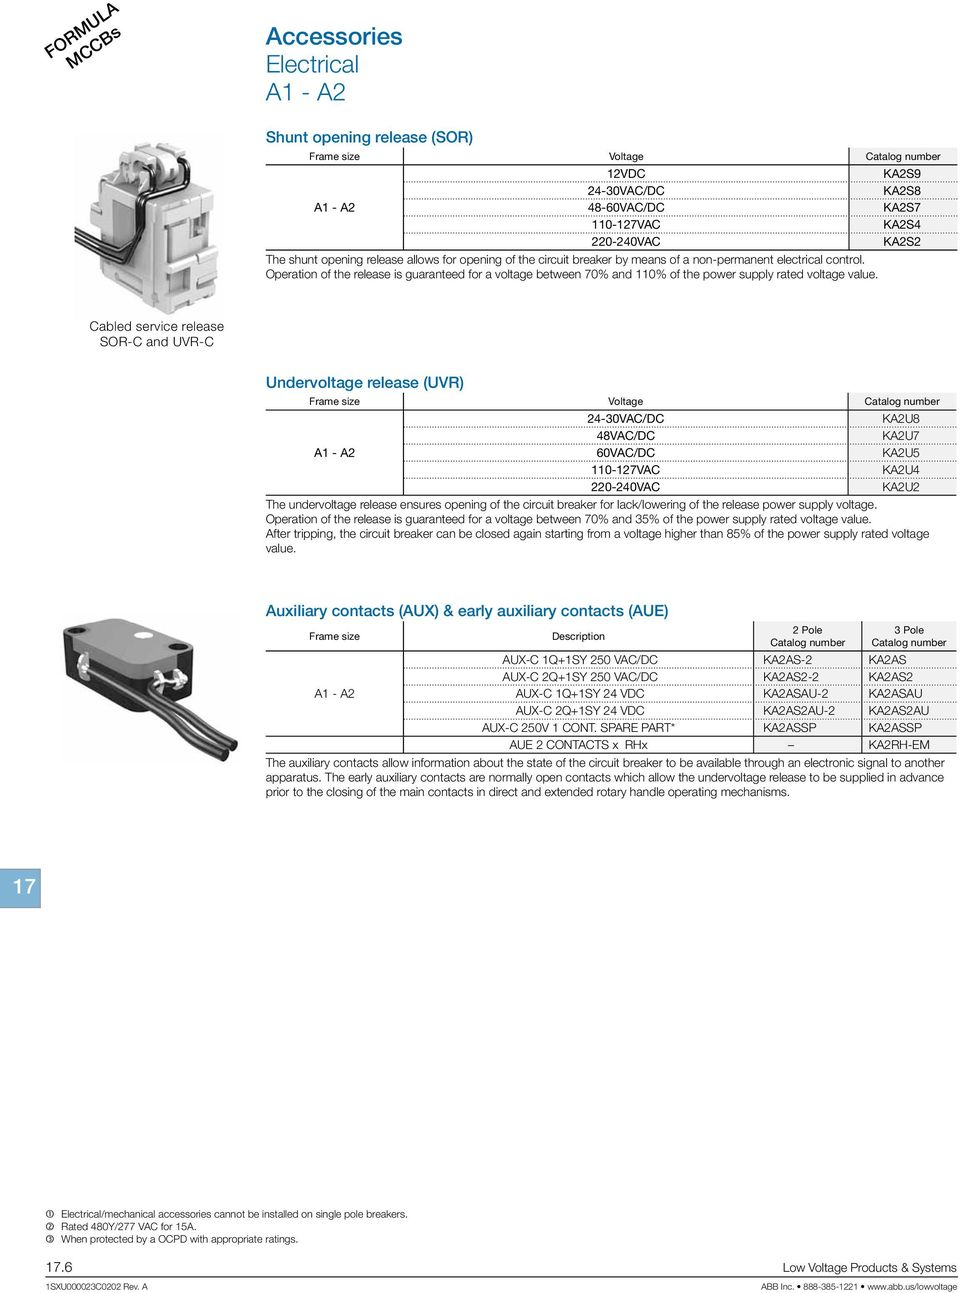 Uvr Wiring Diagram Electrical Diagrams Case 220 Index Molded Circuit Breakers